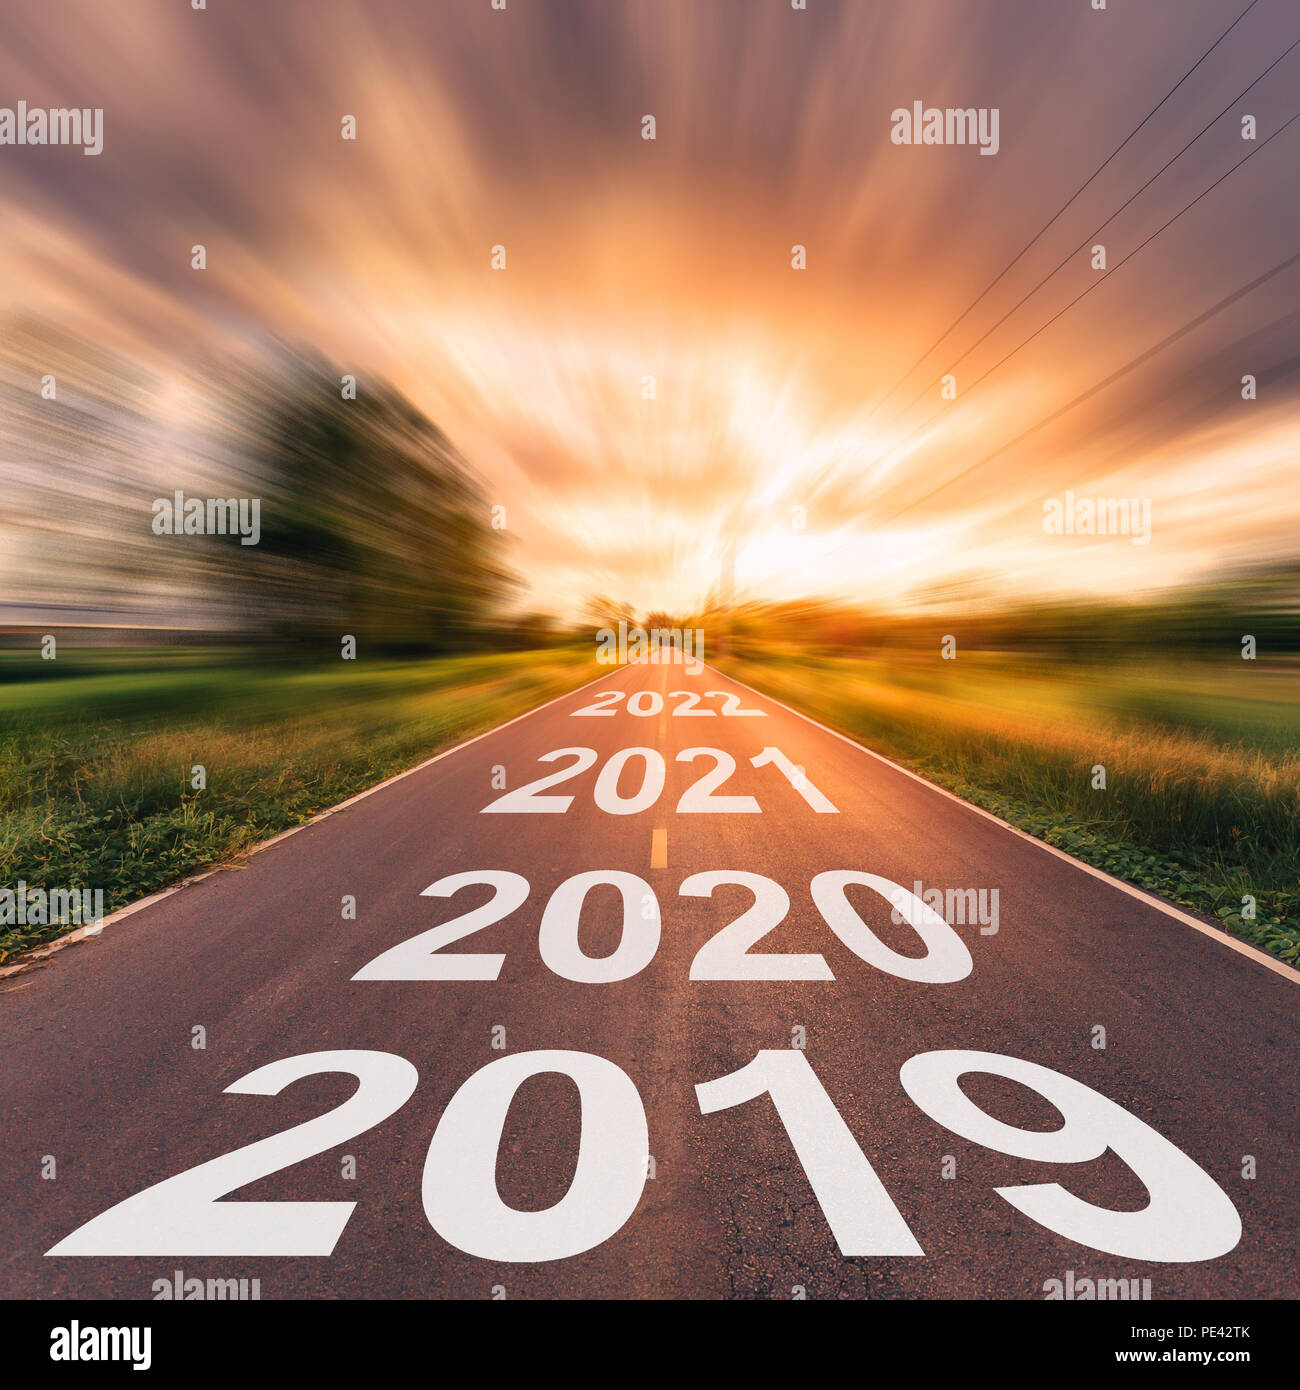 2020 - The Road Ahead   Equities News  2020 The Road Ahead